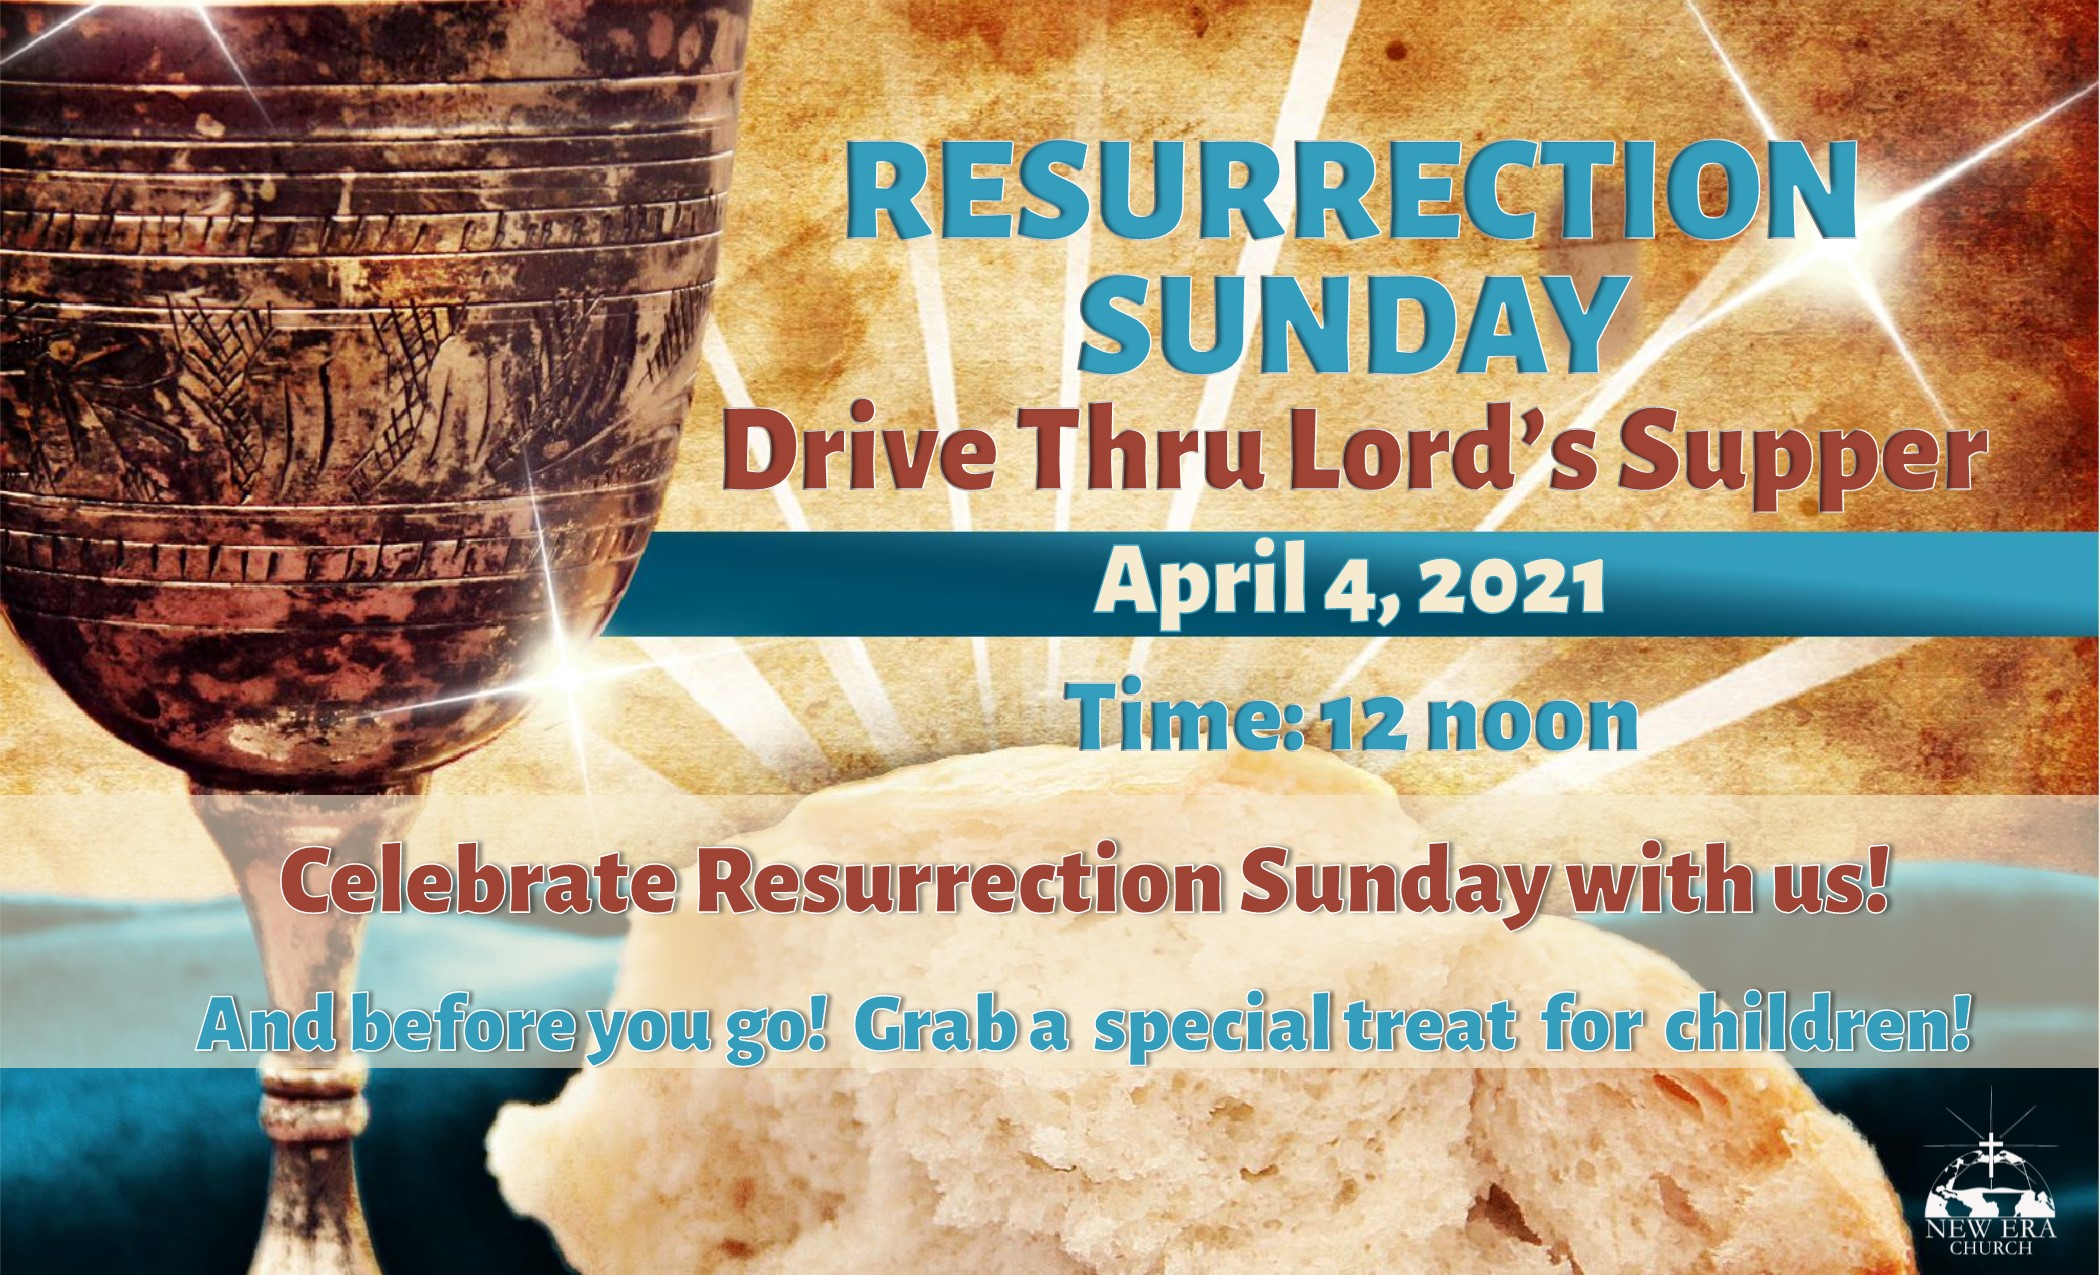 Resurrection Sunday Drive Thru Lords Sup